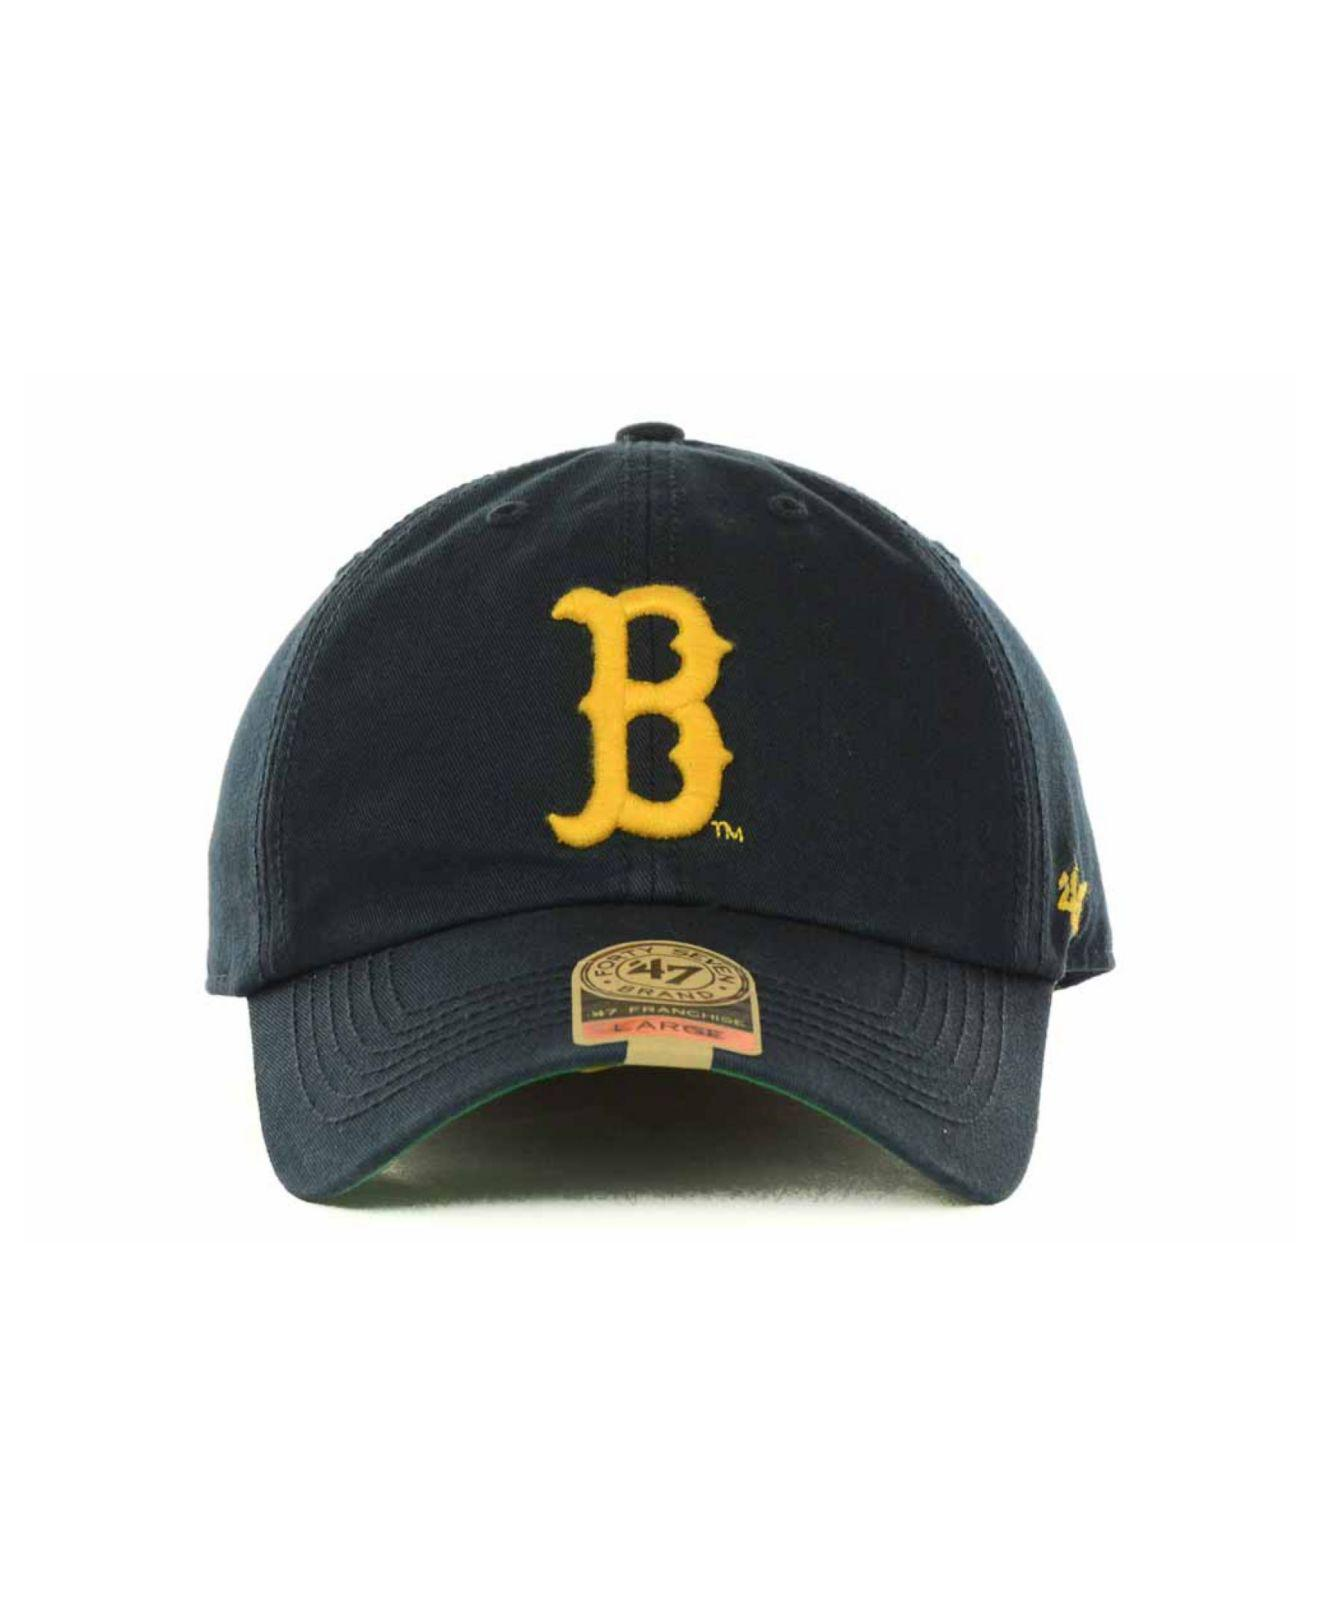 official photos 89535 5313a australia lyst 47 brand ucla bruins franchise cap in blue for men 9275e  fee59